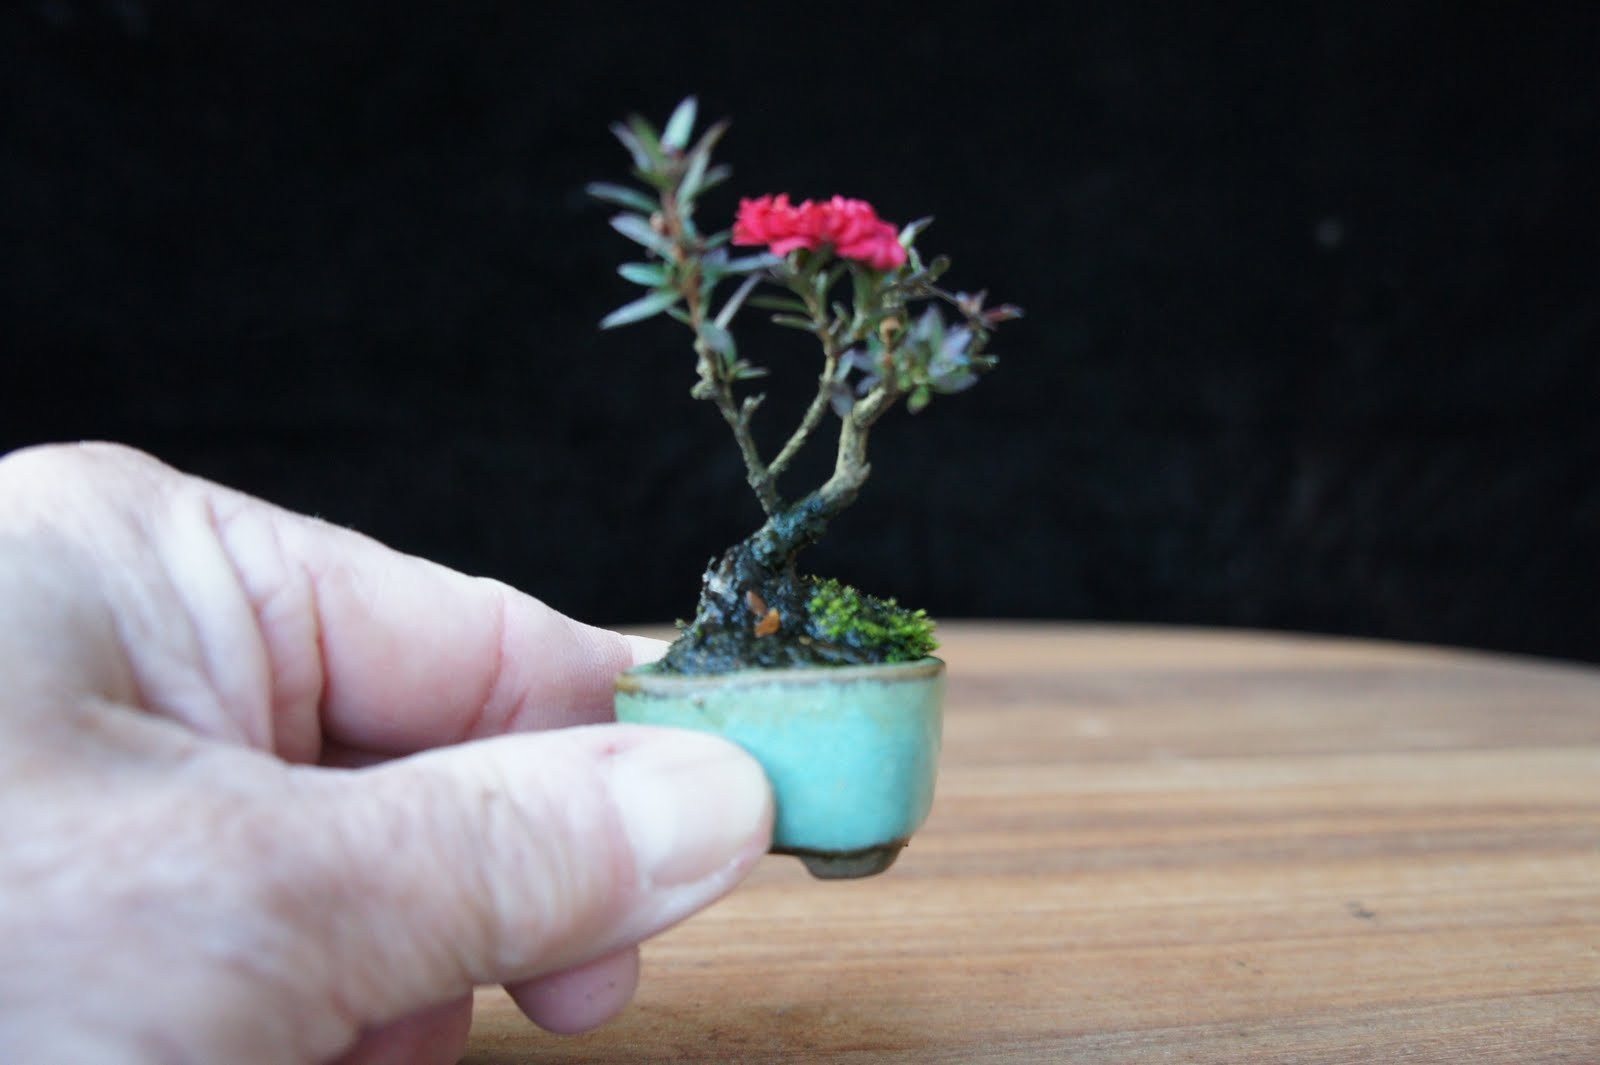 Newzealandteatreebonsai My Smallest Tea Tree Bonsai